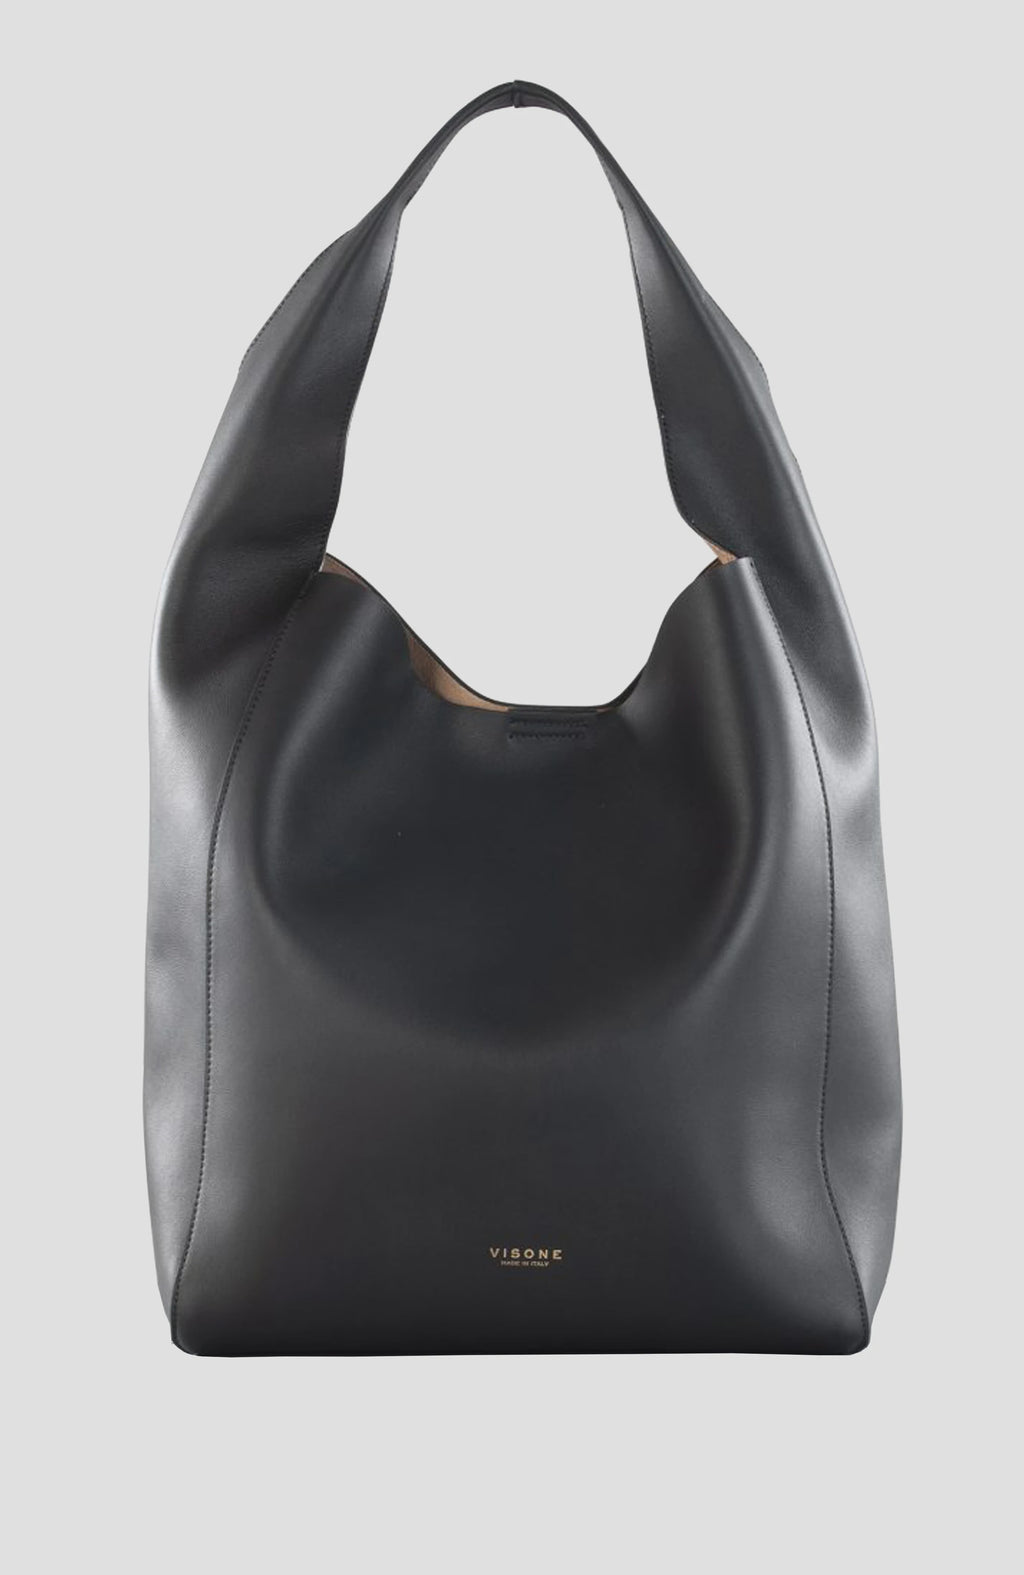 Visone Black Leather Large Shopping Bag